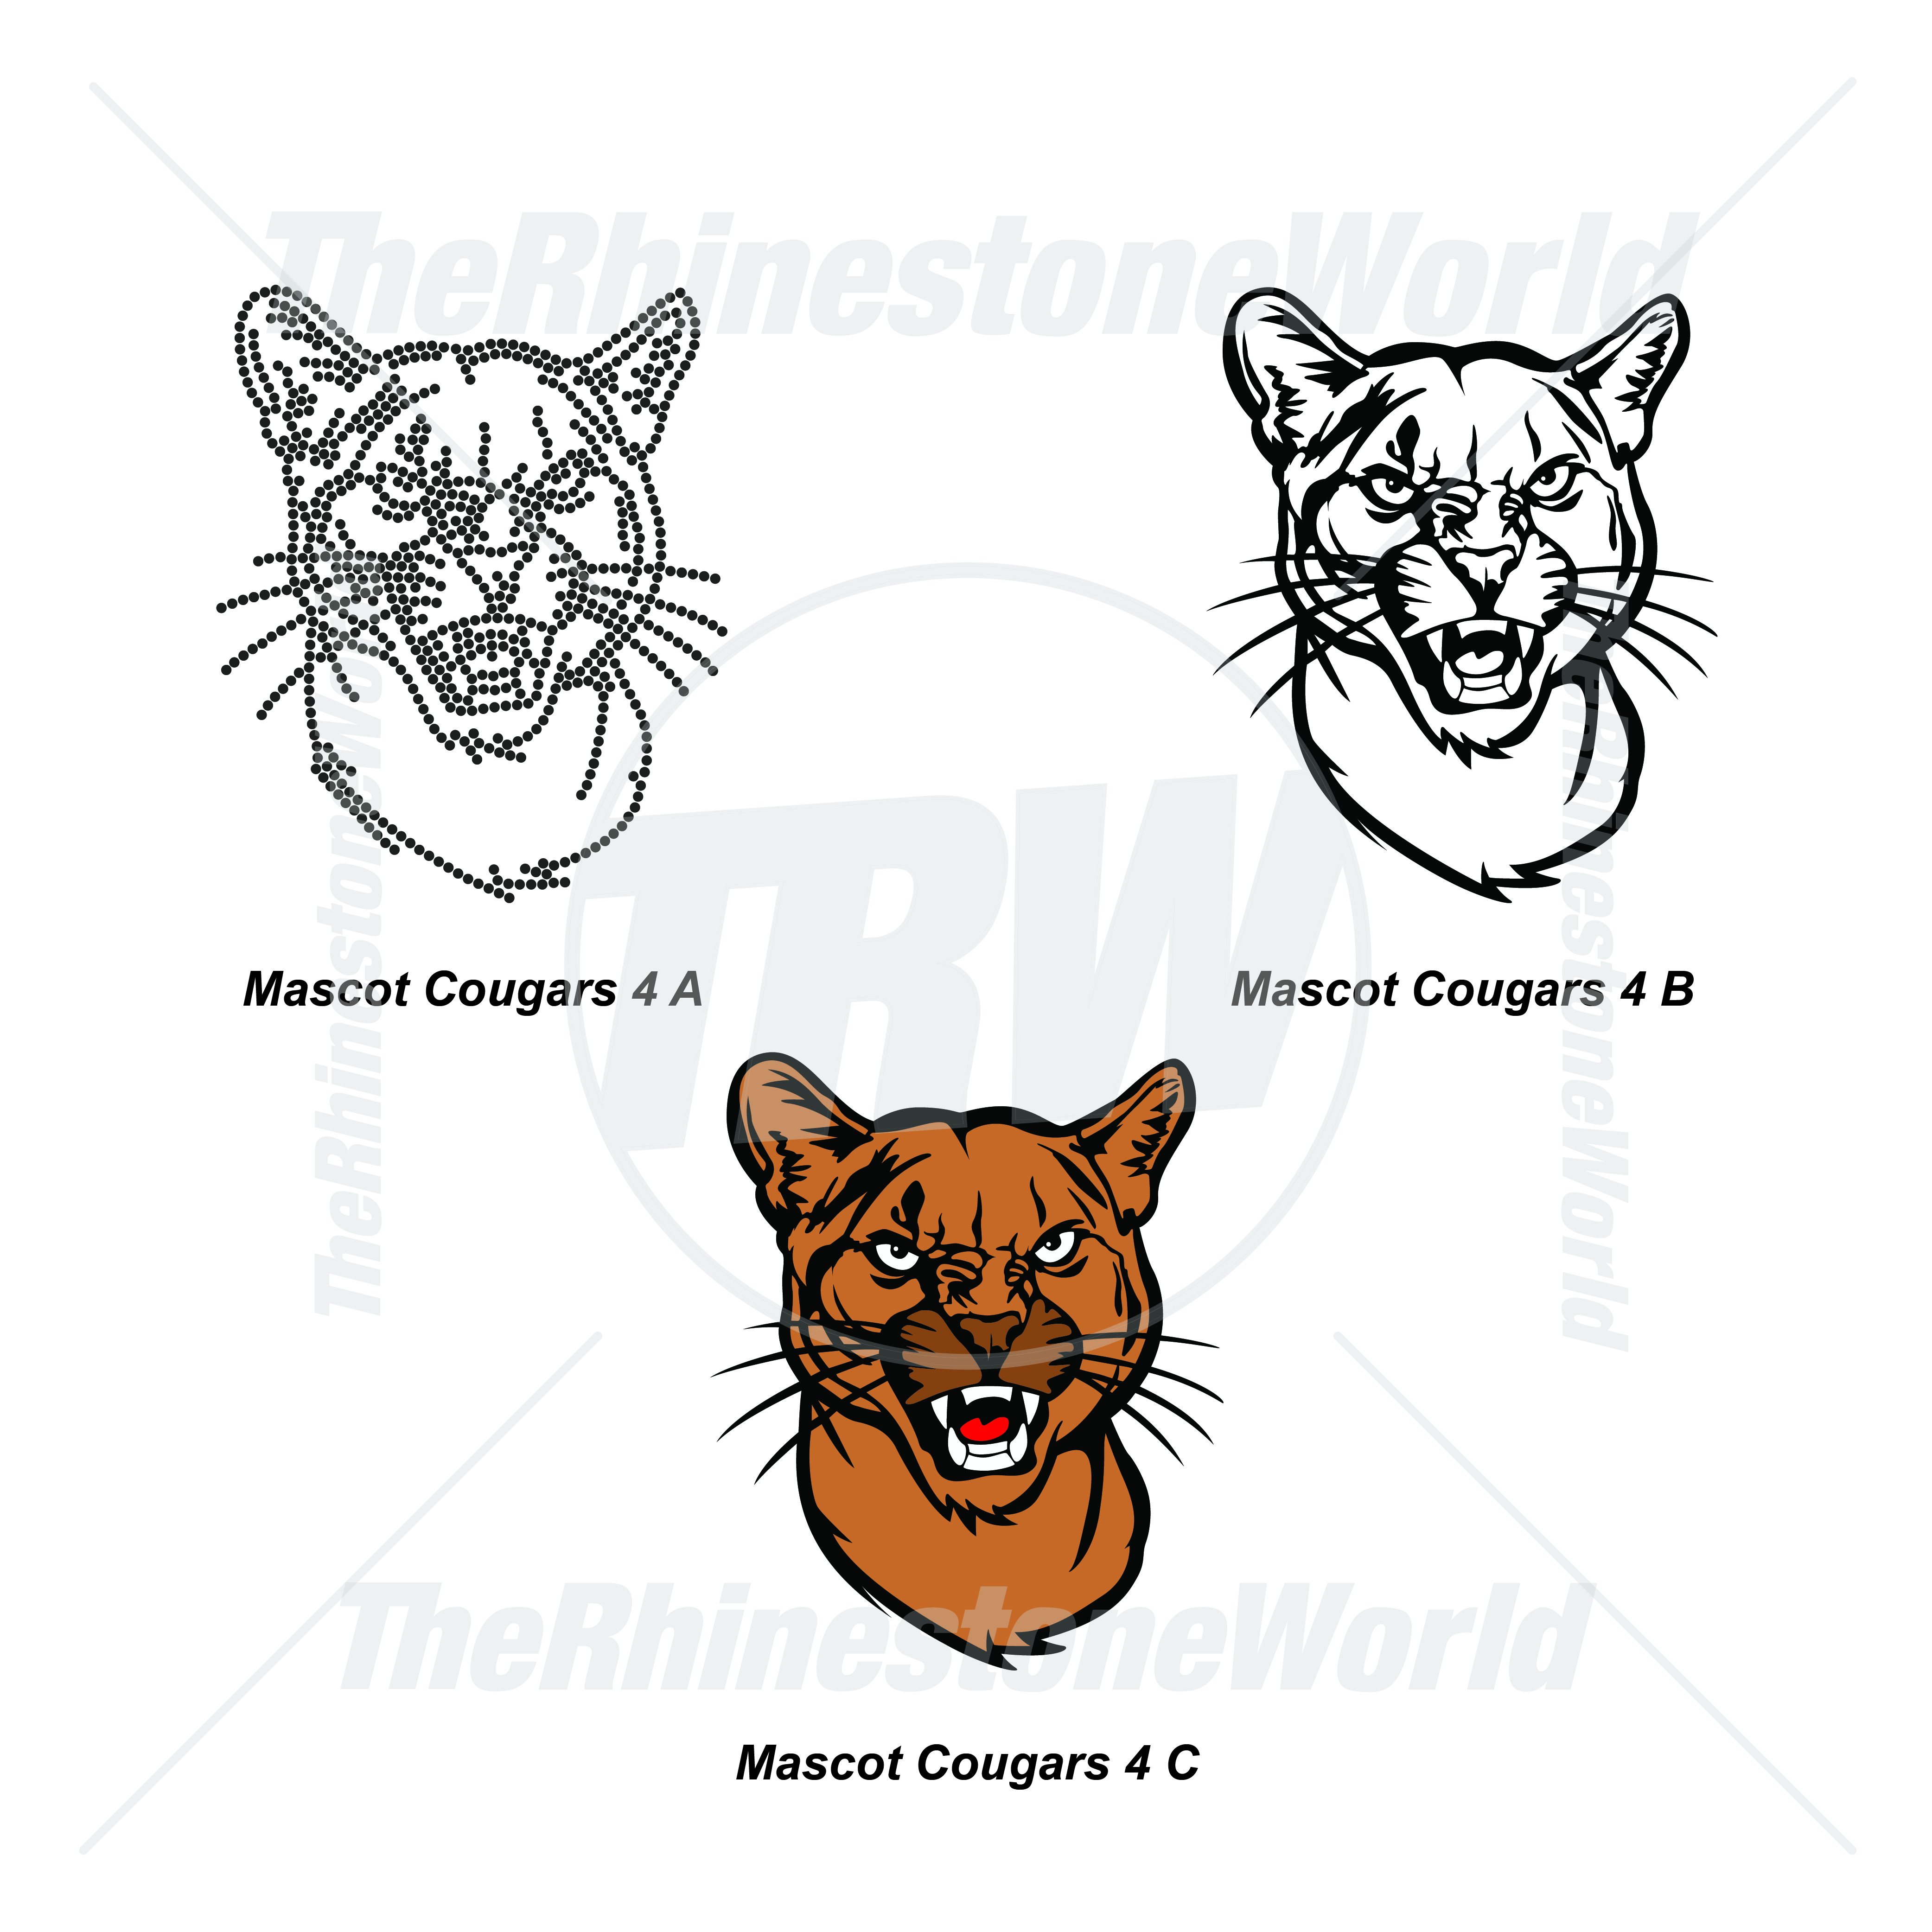 TRW Mascot Cougars 4 - Download